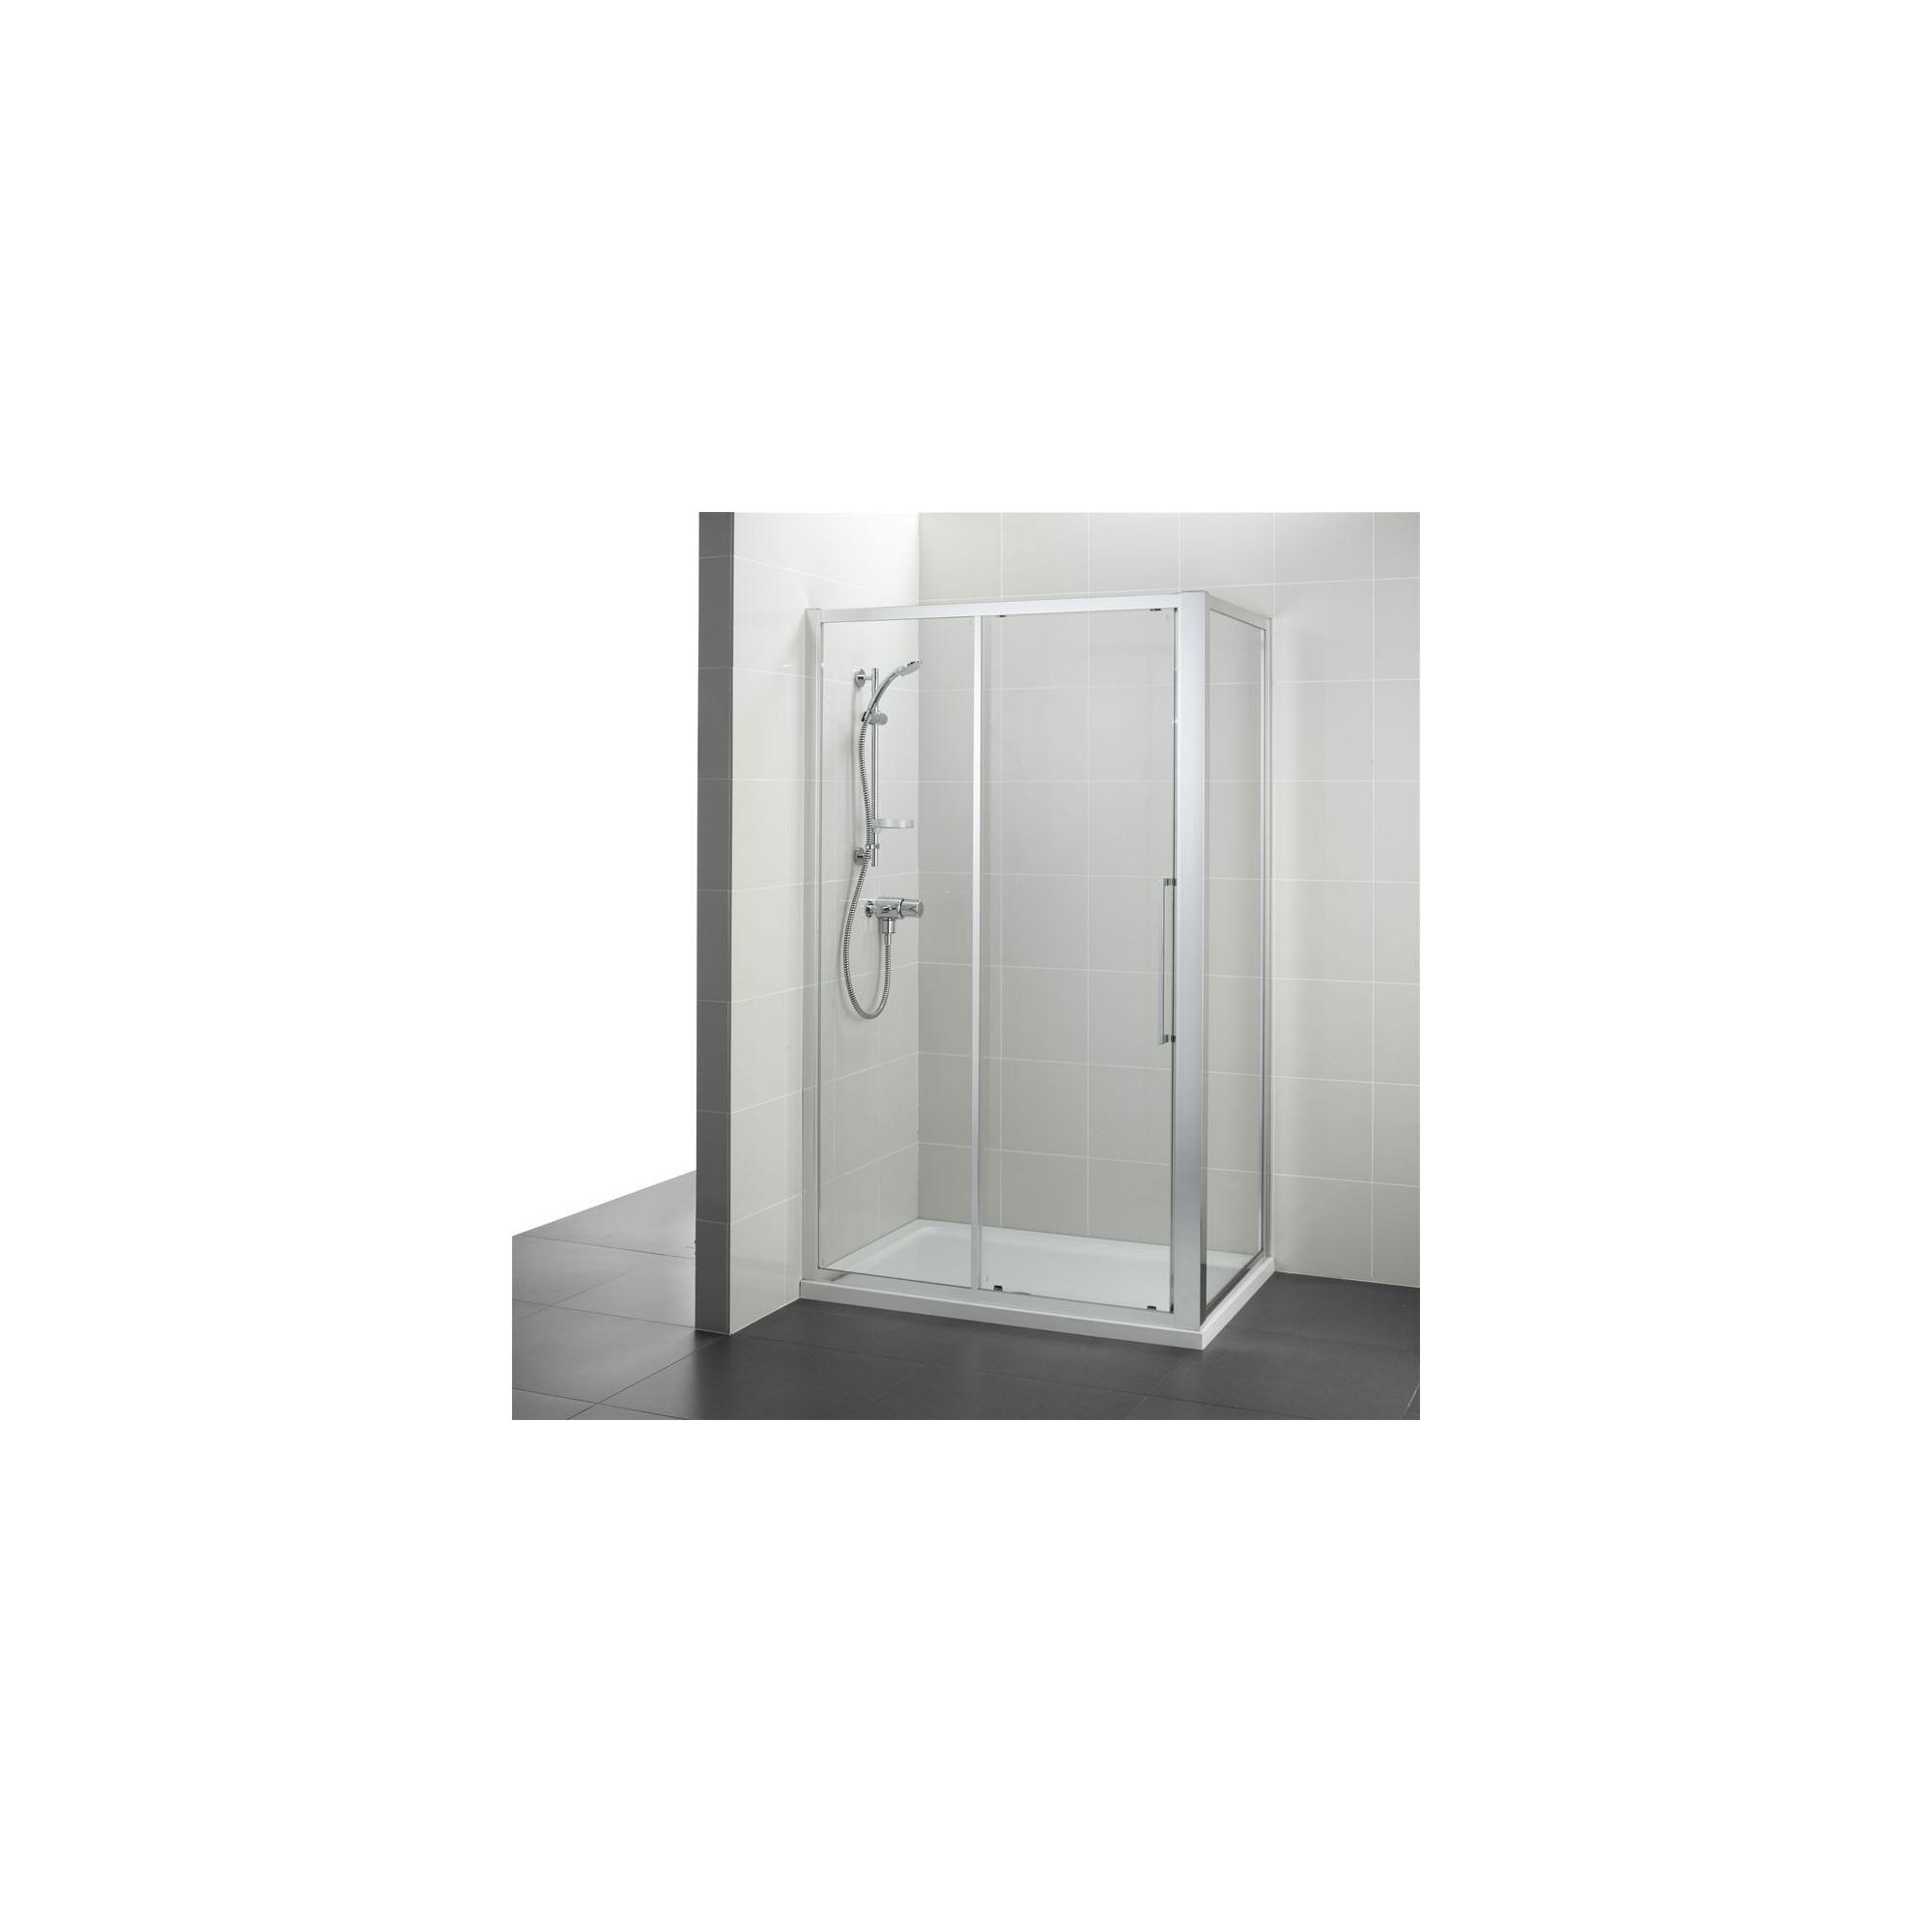 Ideal Standard Kubo Pivot Door Shower Enclosure, 900mm x 800mm, Bright Silver Frame, Low Profile Tray at Tescos Direct